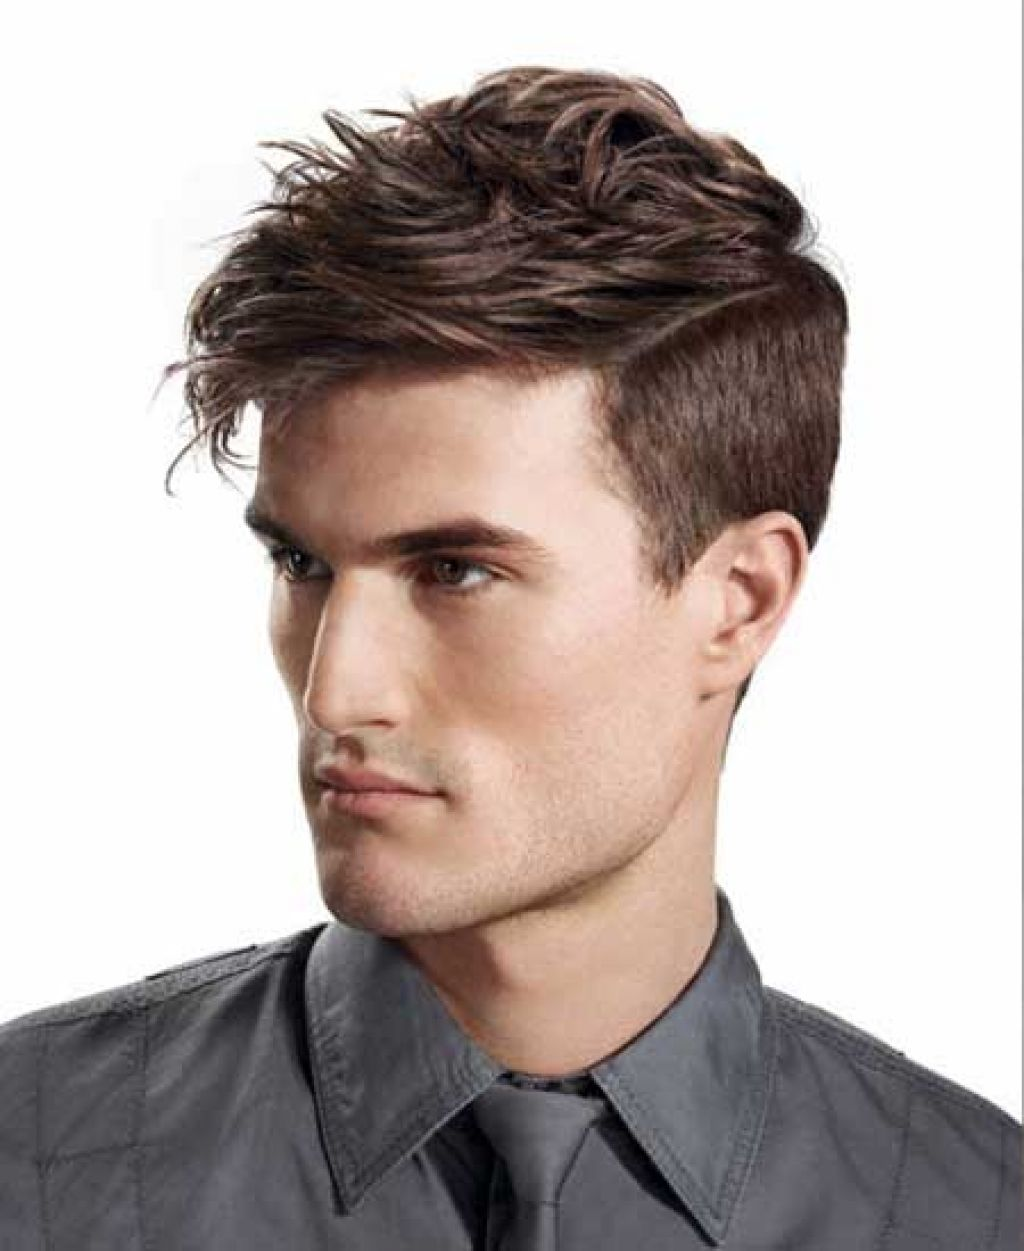 Boys Hairstyles Ideas To Look Super Cool The Xerxes Boy Hairstyles Boy Haircuts Long Medium Hair Styles